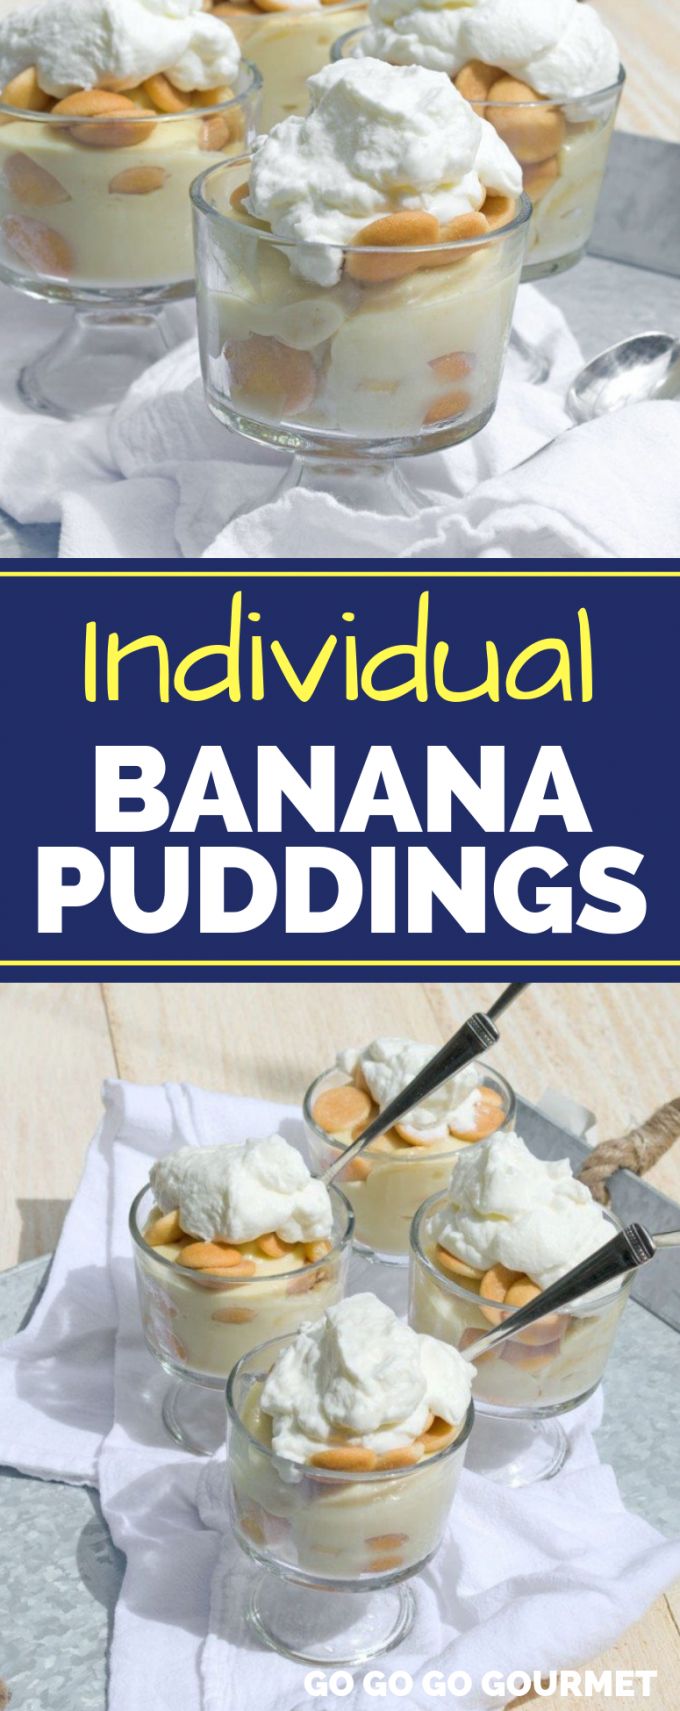 This easy homemade Banana Pudding recipe is perfect served in mini parfait dishes! This southern classic doesn't get any better than when it's made from scratch! #gogogogourmet #bananapudding #homemadebananapudding #homemadepudding via @gogogogourmet